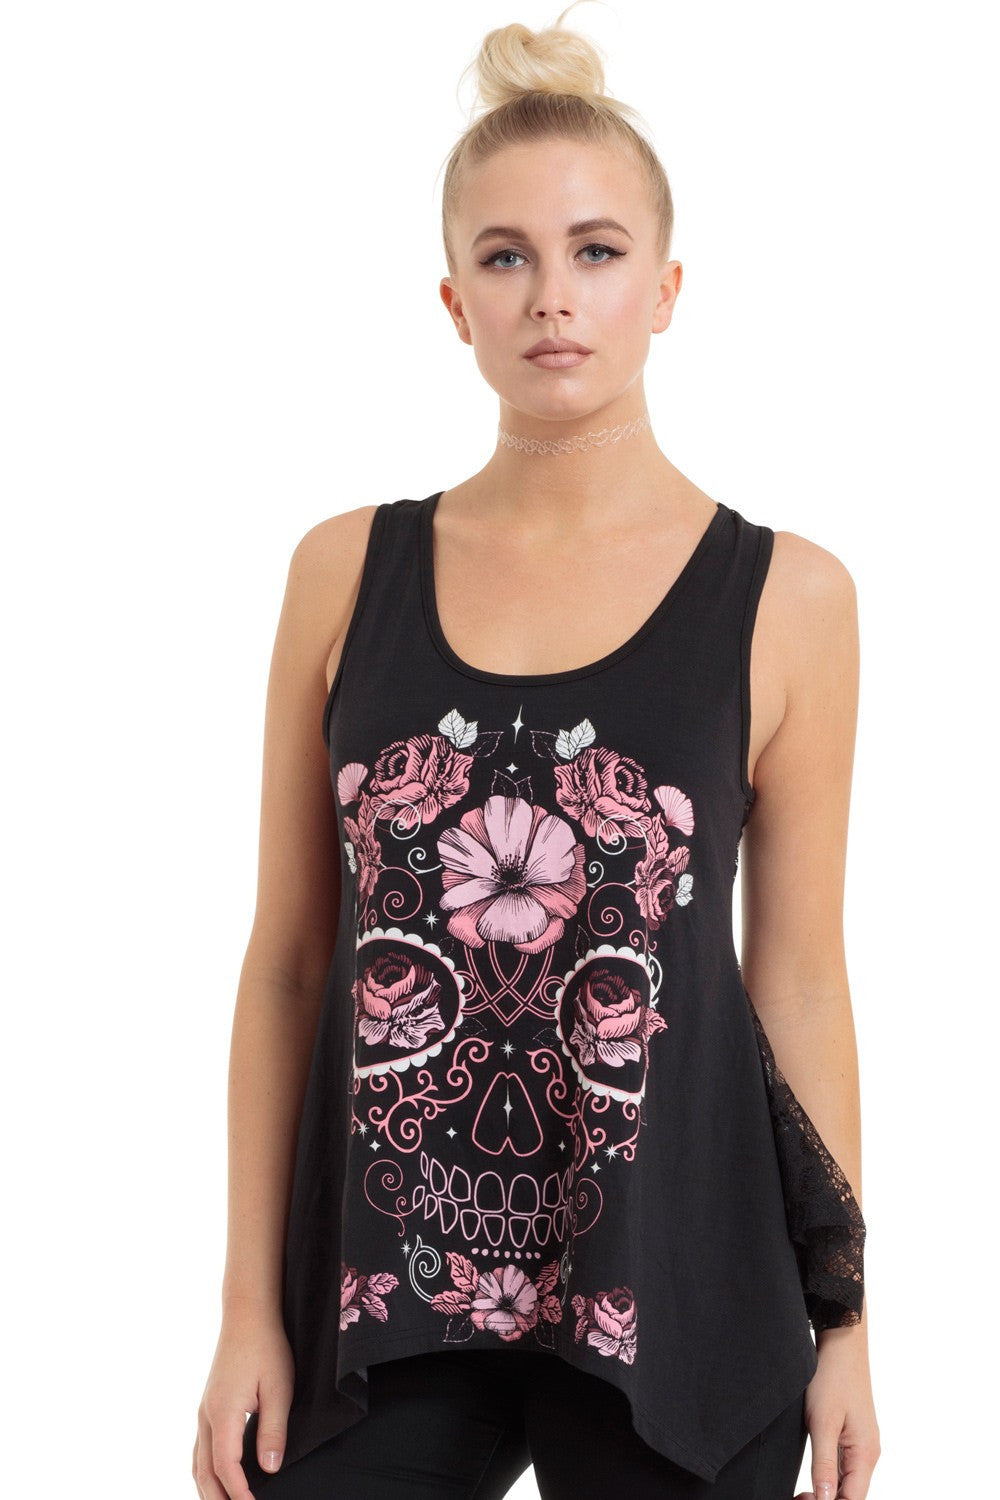 1c9729f575780 Jawbreaker Clothing - Women s Black Floral Sugar Skull Skull Lace Back Top